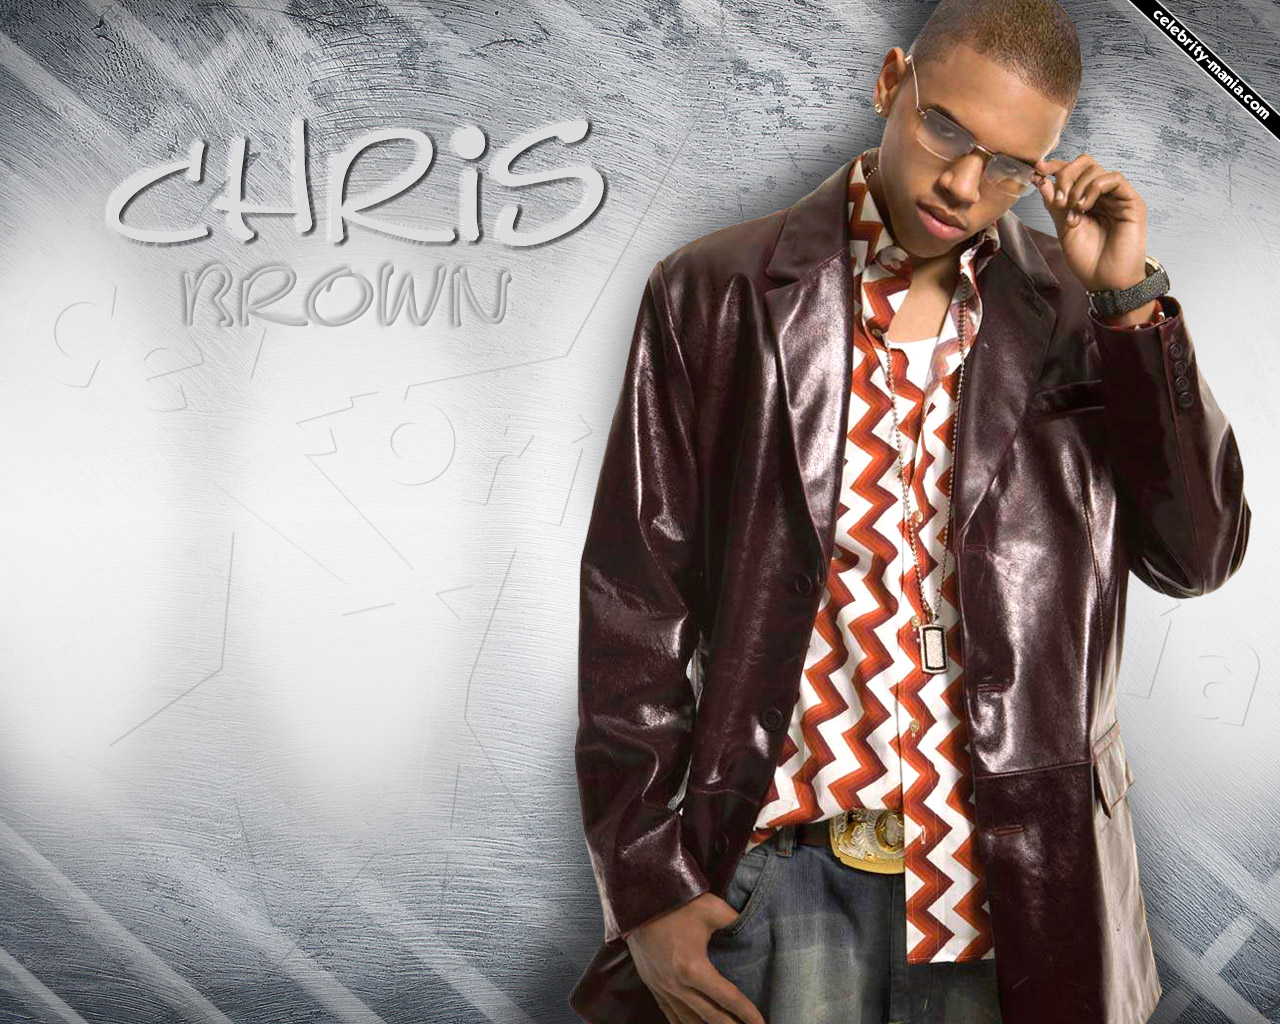 Chris Brown - Picture